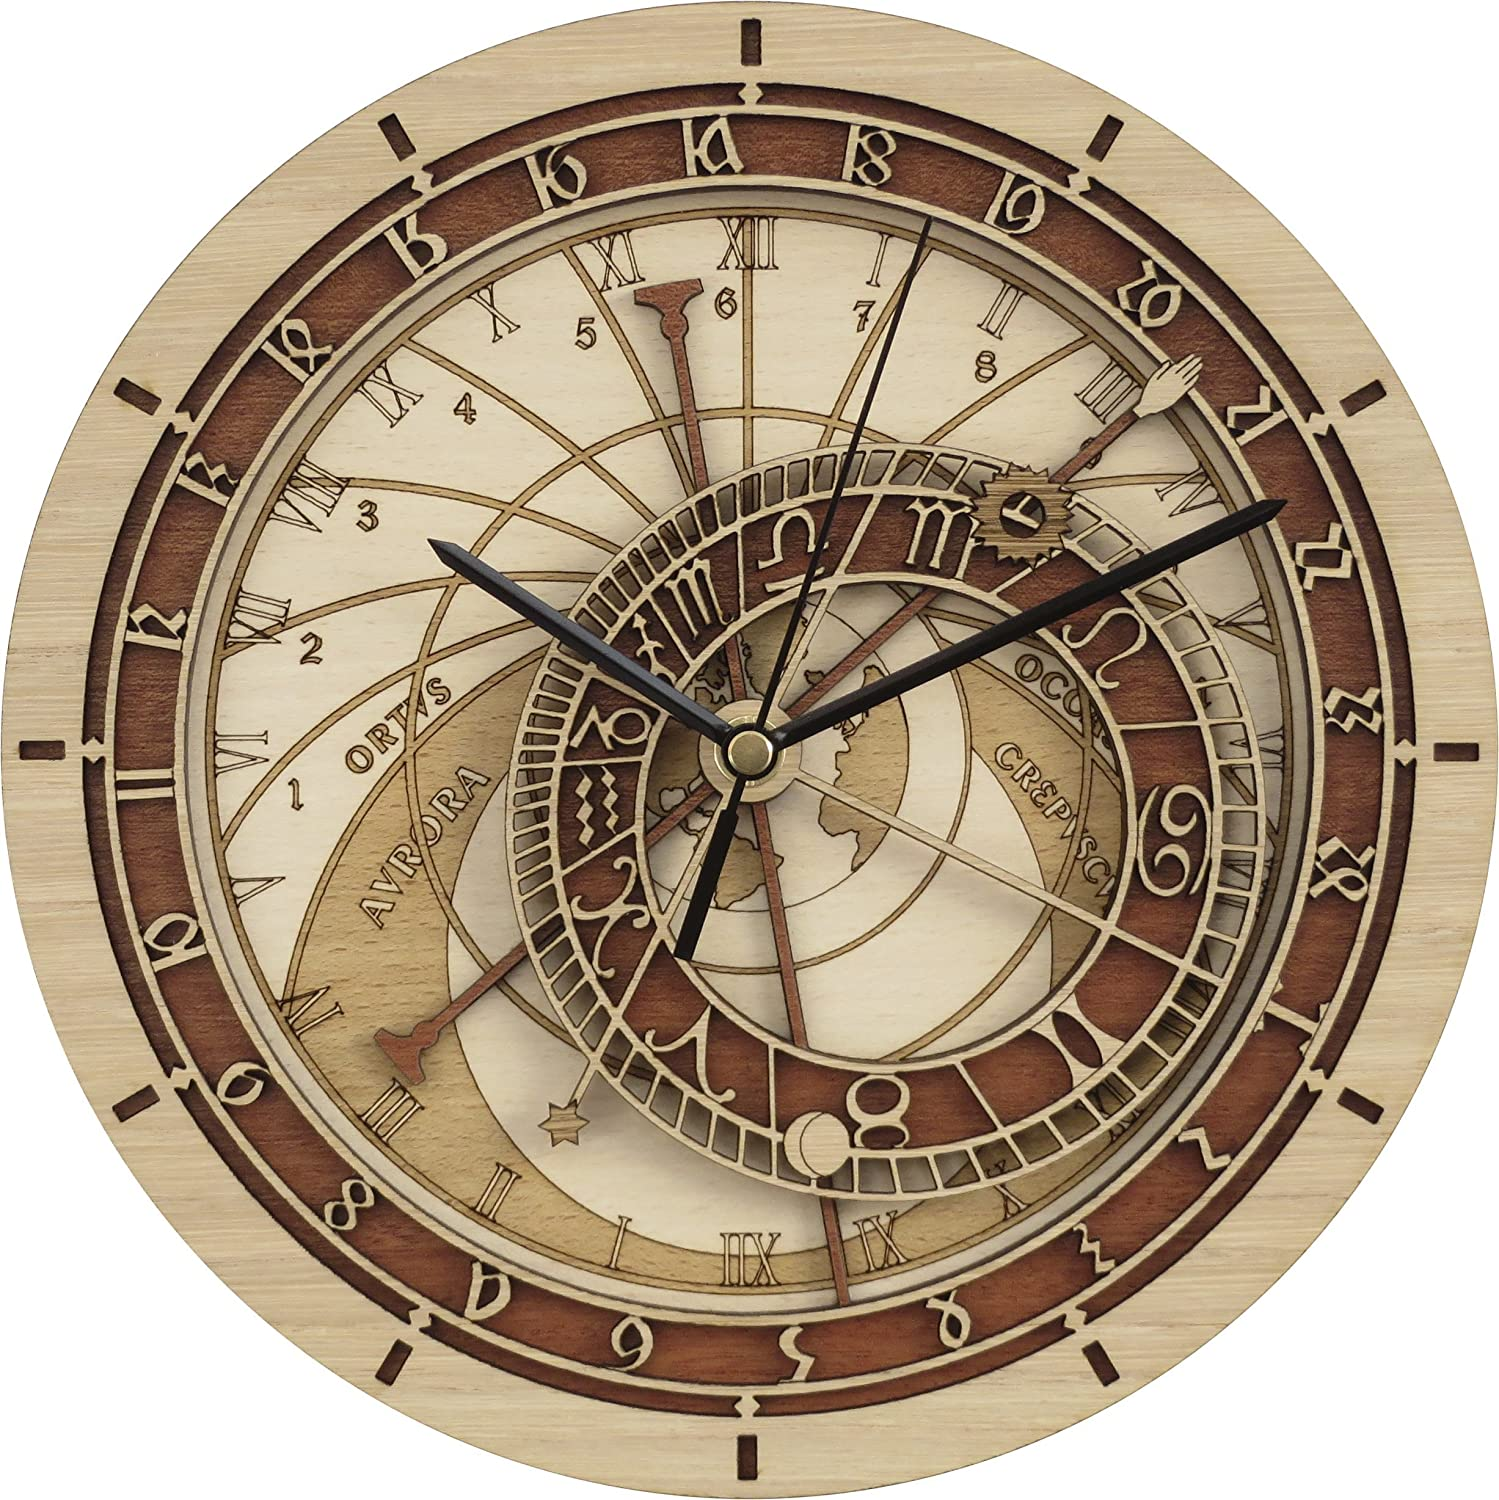 Wooden Prague Astronomical Clock